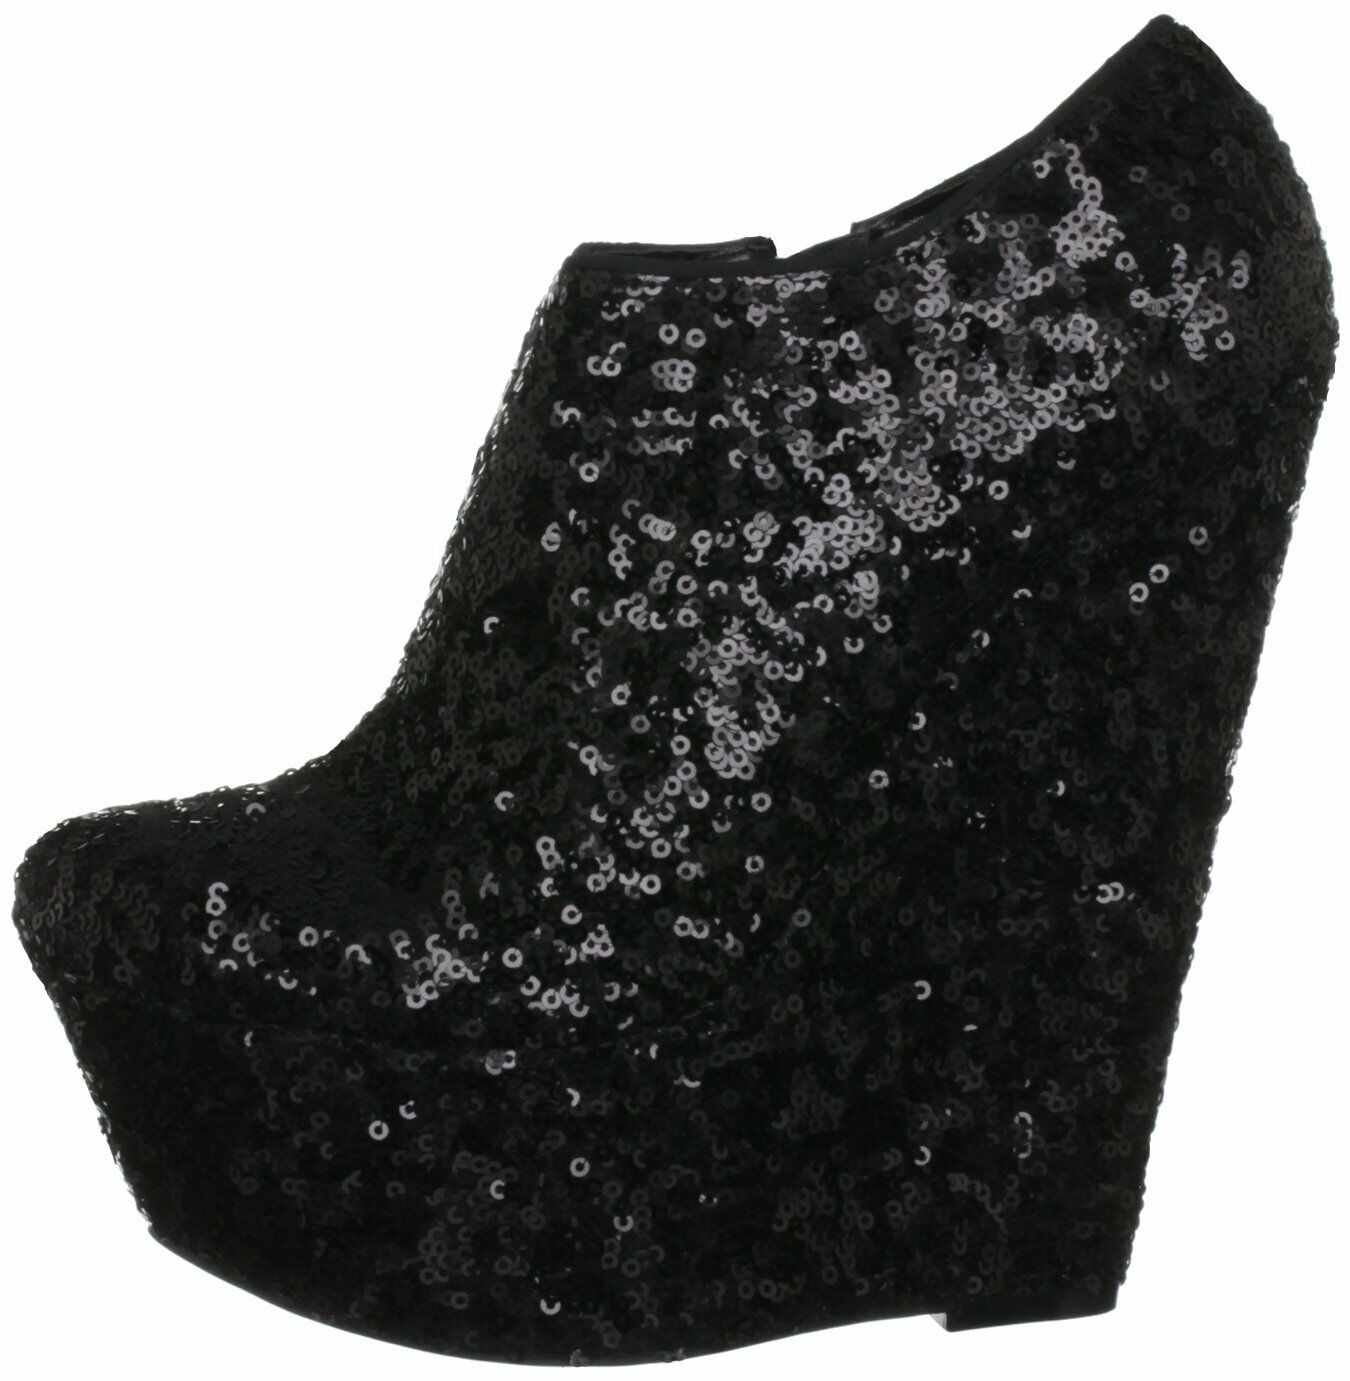 Grandes zapatos con descuento  160 BNWB CARVELA KURT GEIGER SIZE 7 BLACK GEORDIE WEDGE ANKLE SHOES BOOTS